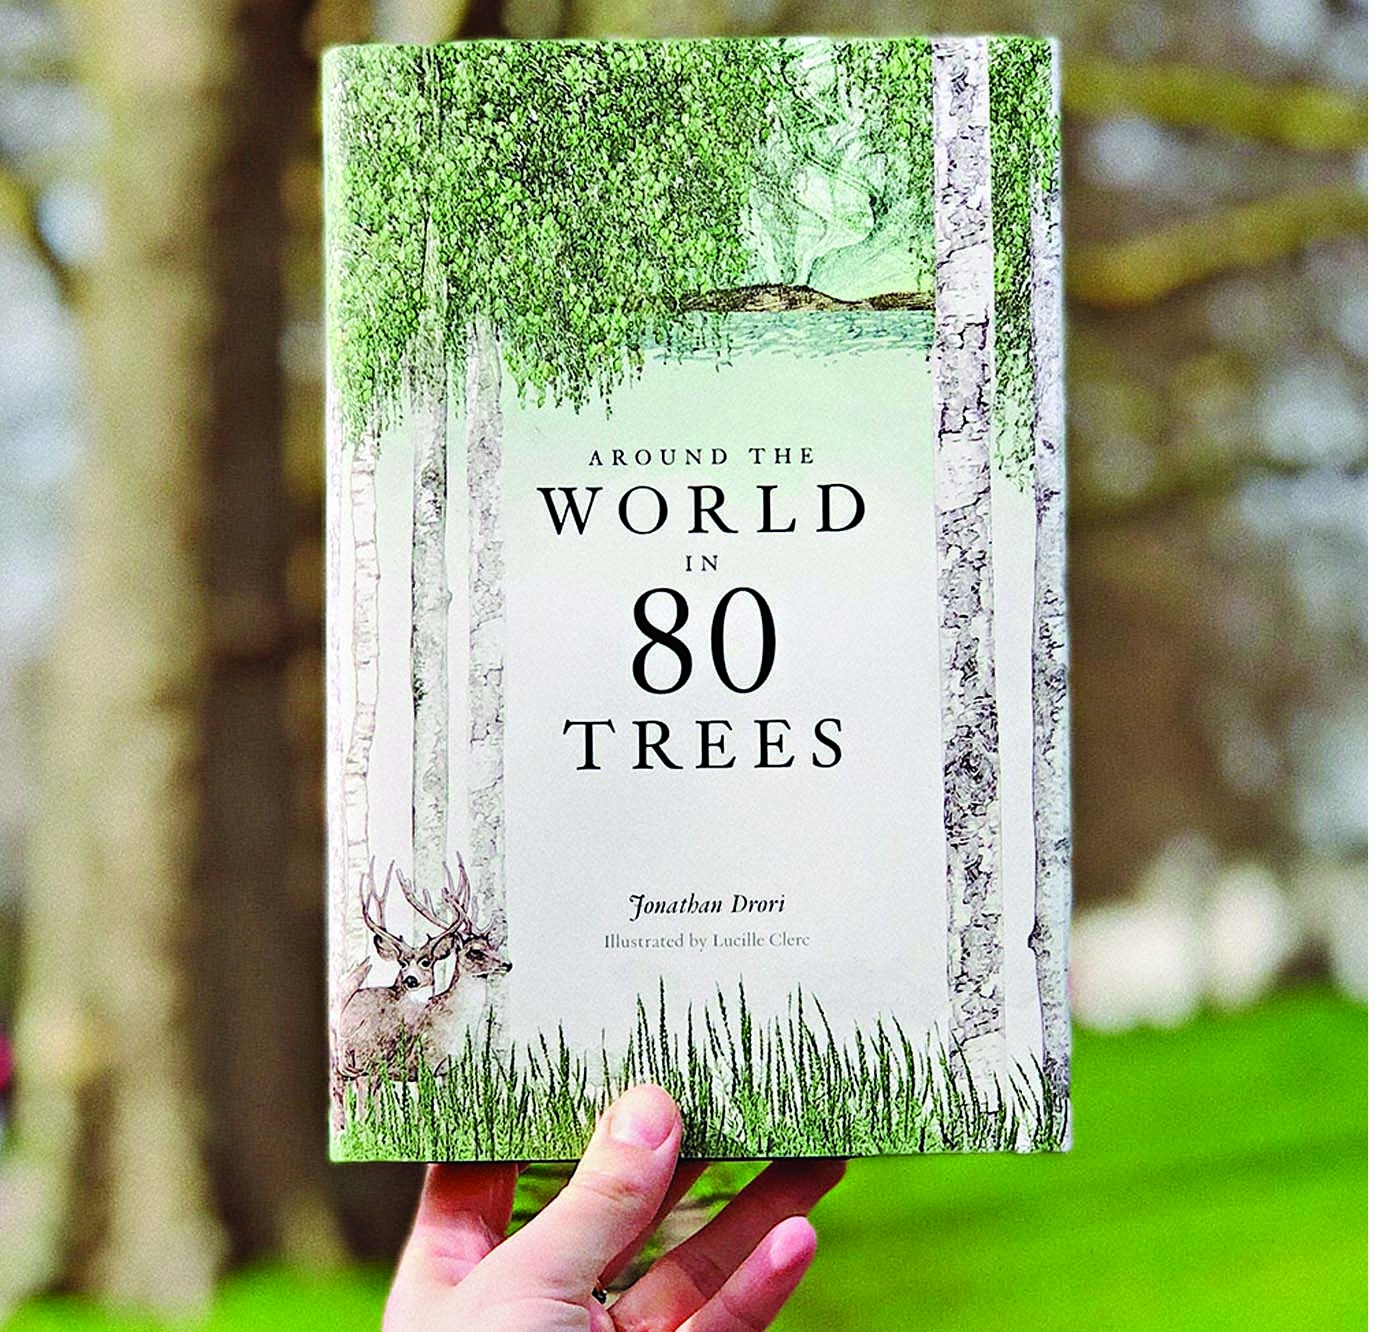 'Around the World  in 80 Trees' by Jonathan Drori